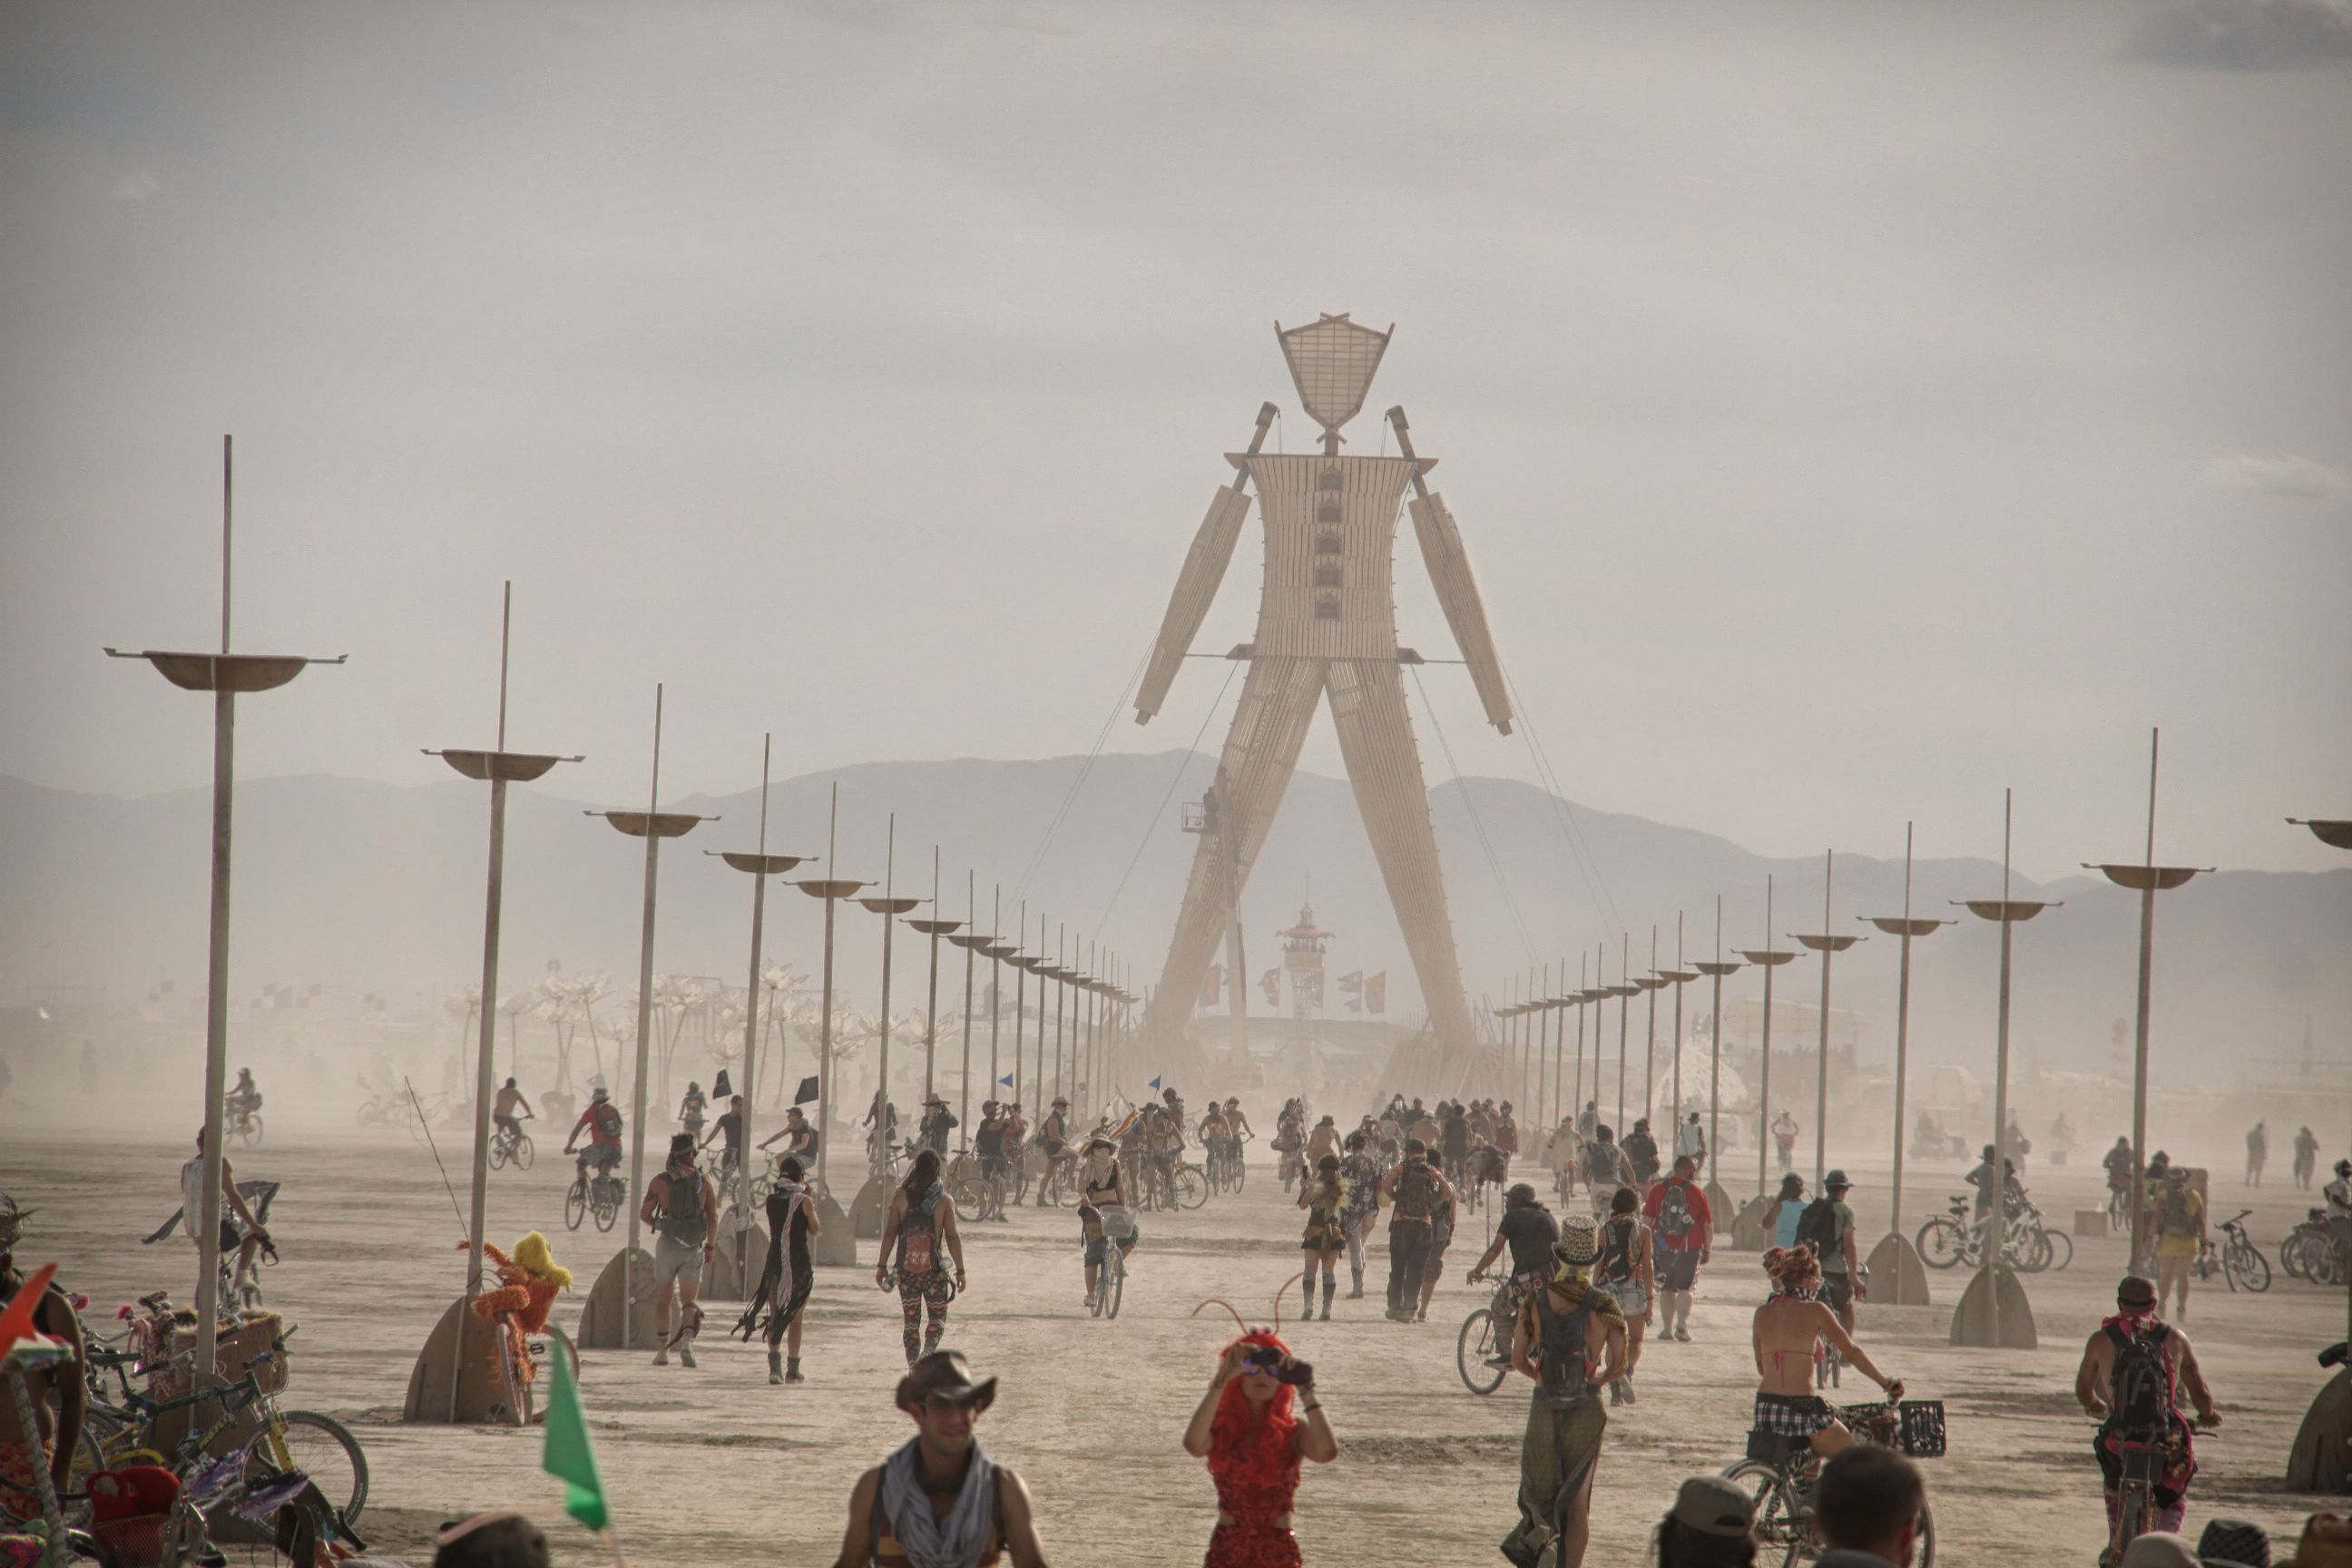 A Man on the Playa